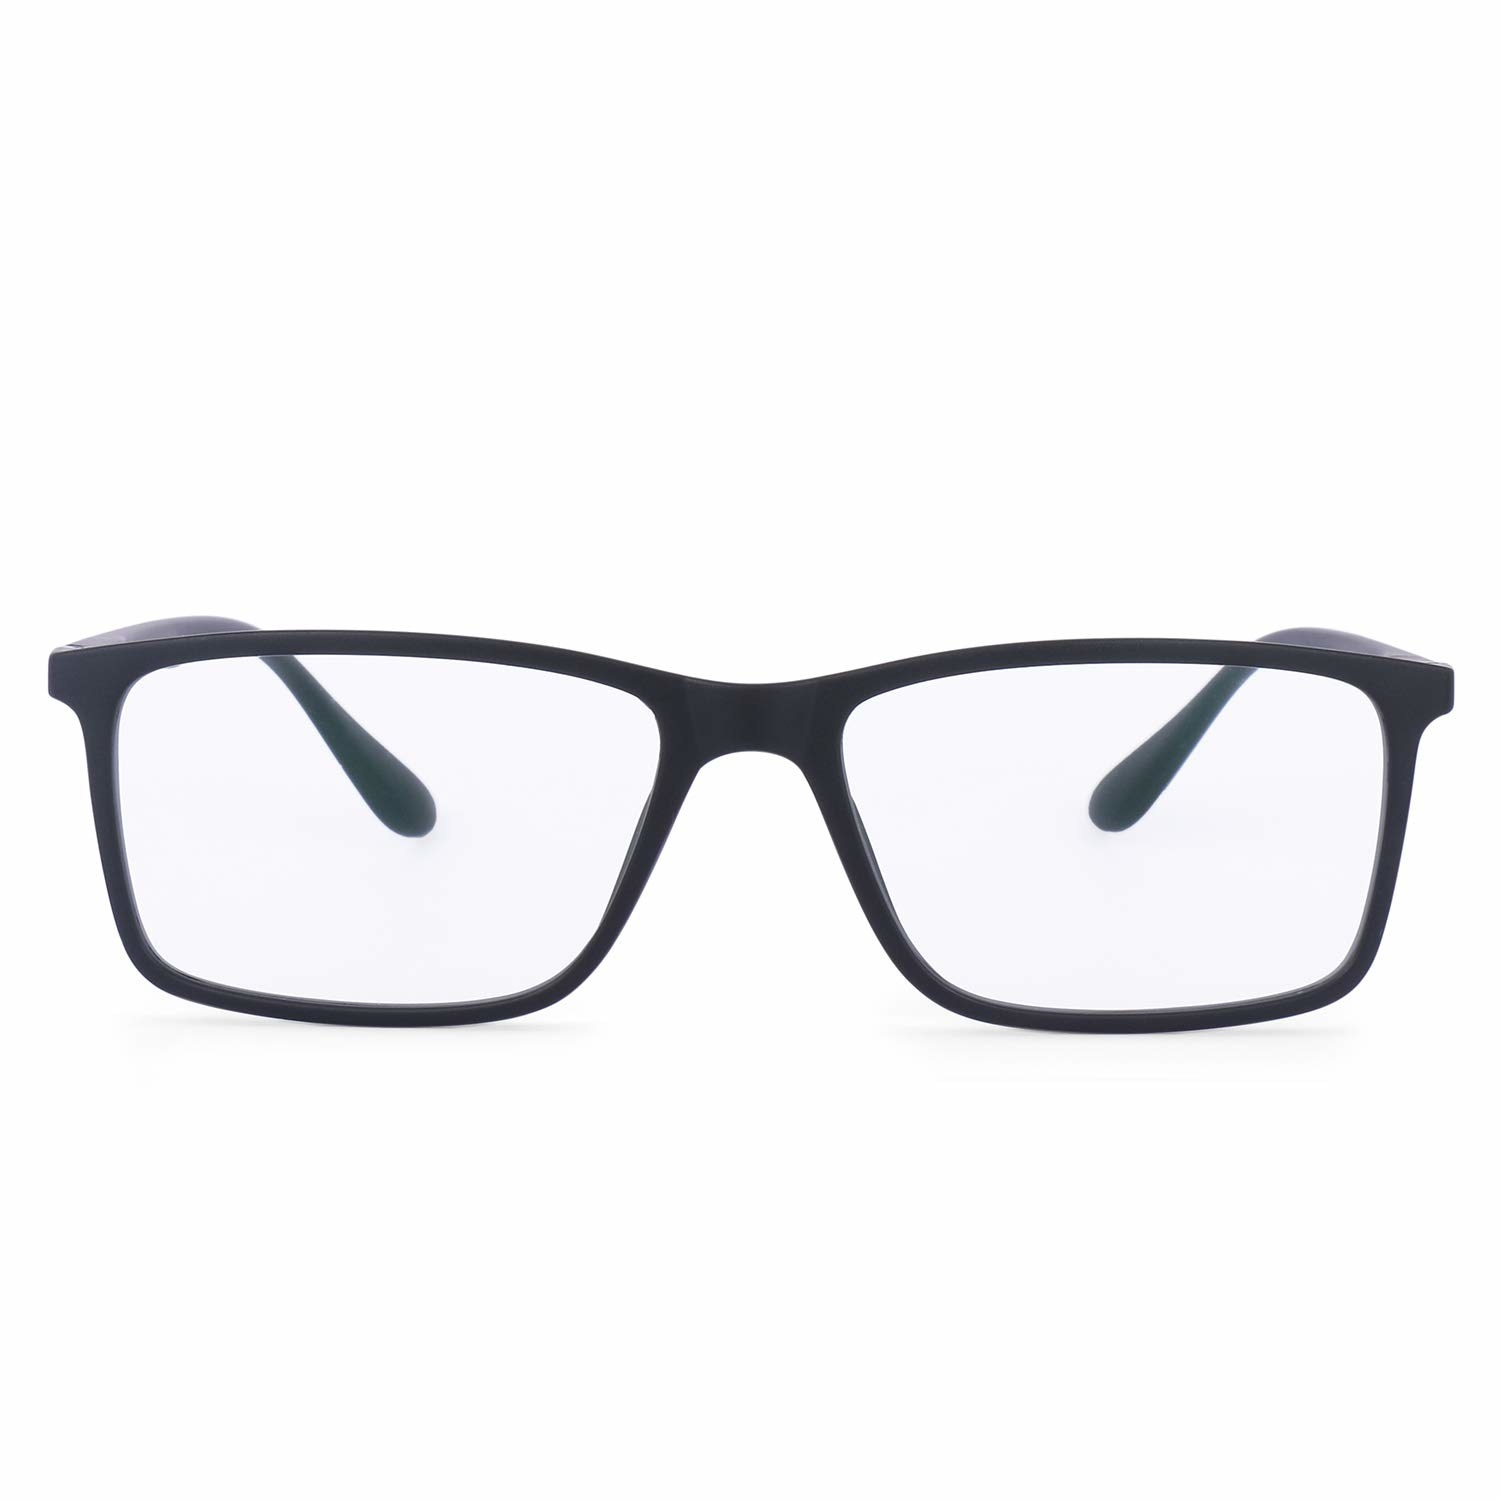 A pair of anti-glare spectacles